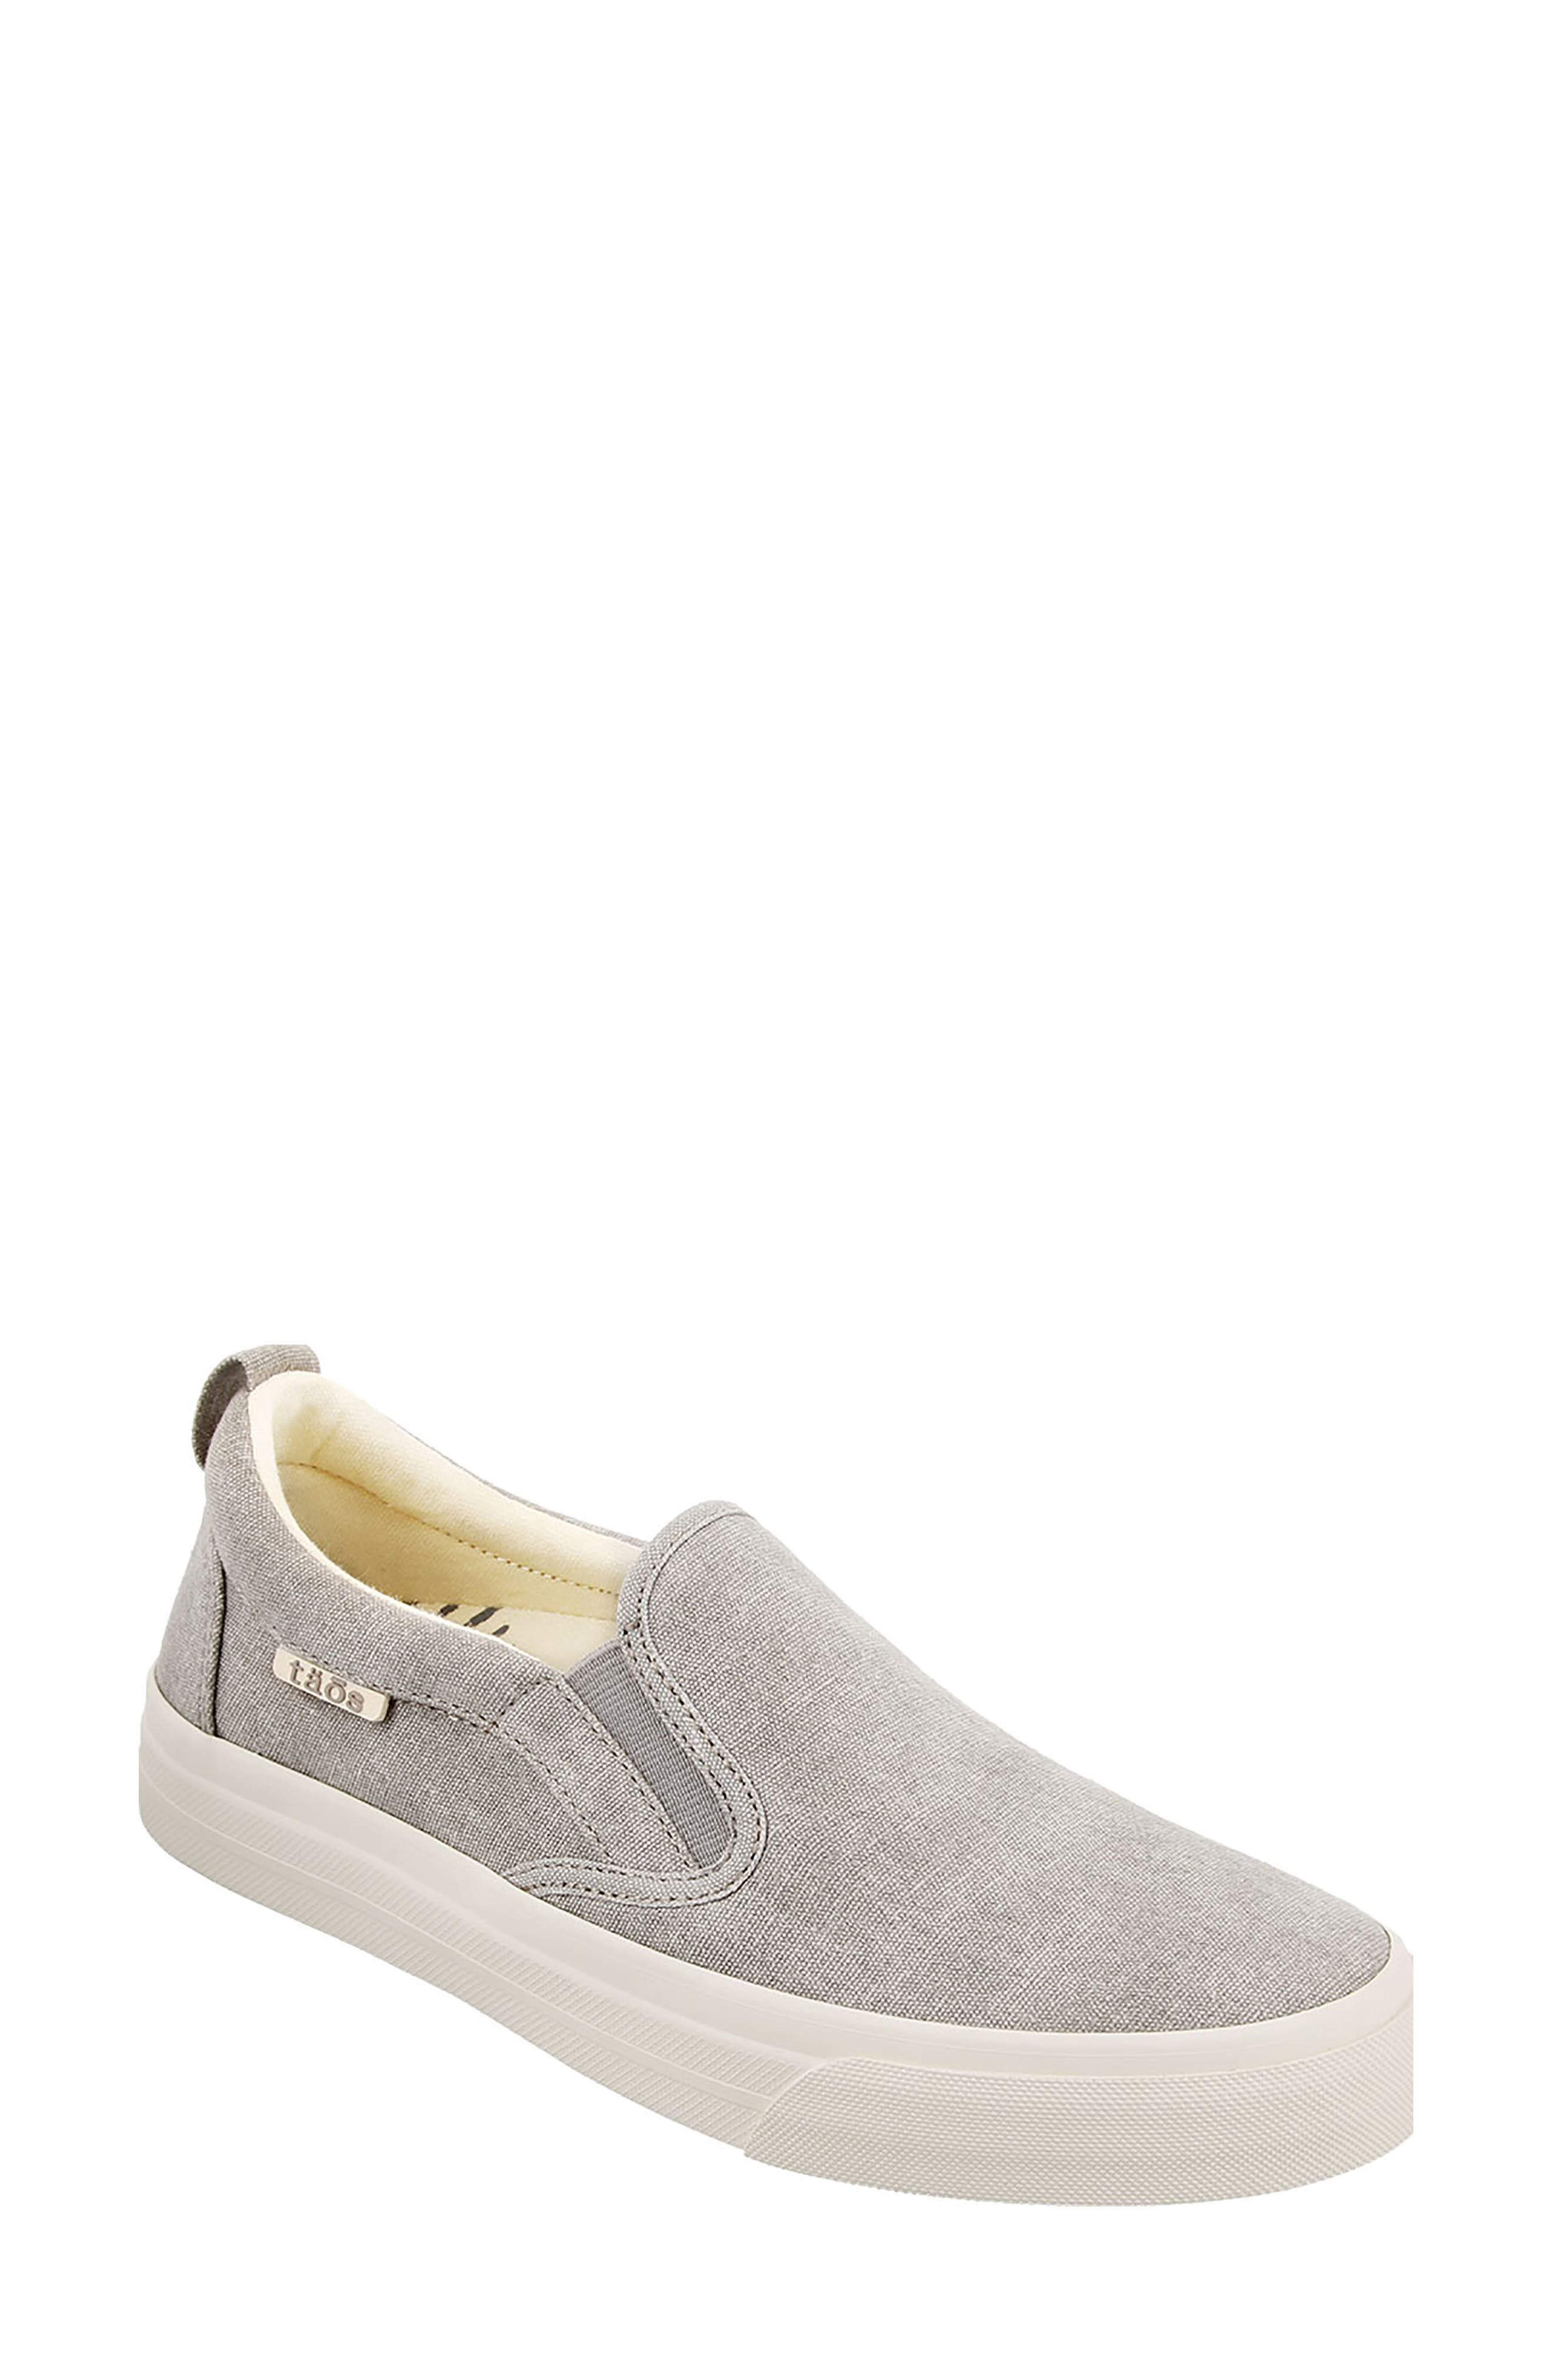 Soul Slip-On Sneaker,                         Main,                         color, GREY WASH CANVAS